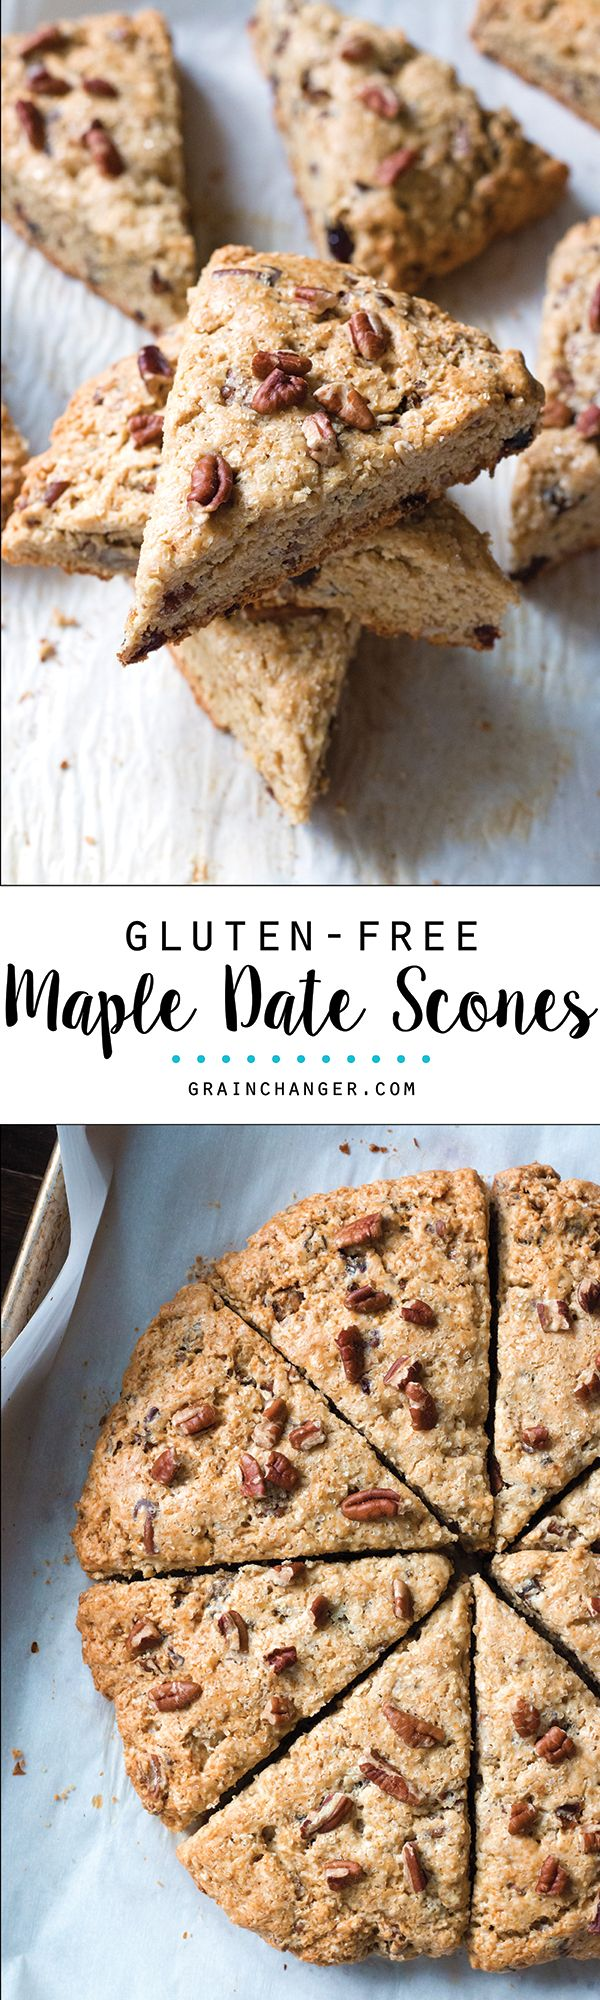 Comforting and nostalgic, these Gluten-Free Maple Date Scones will turn even the biggest scone skeptics into believers!